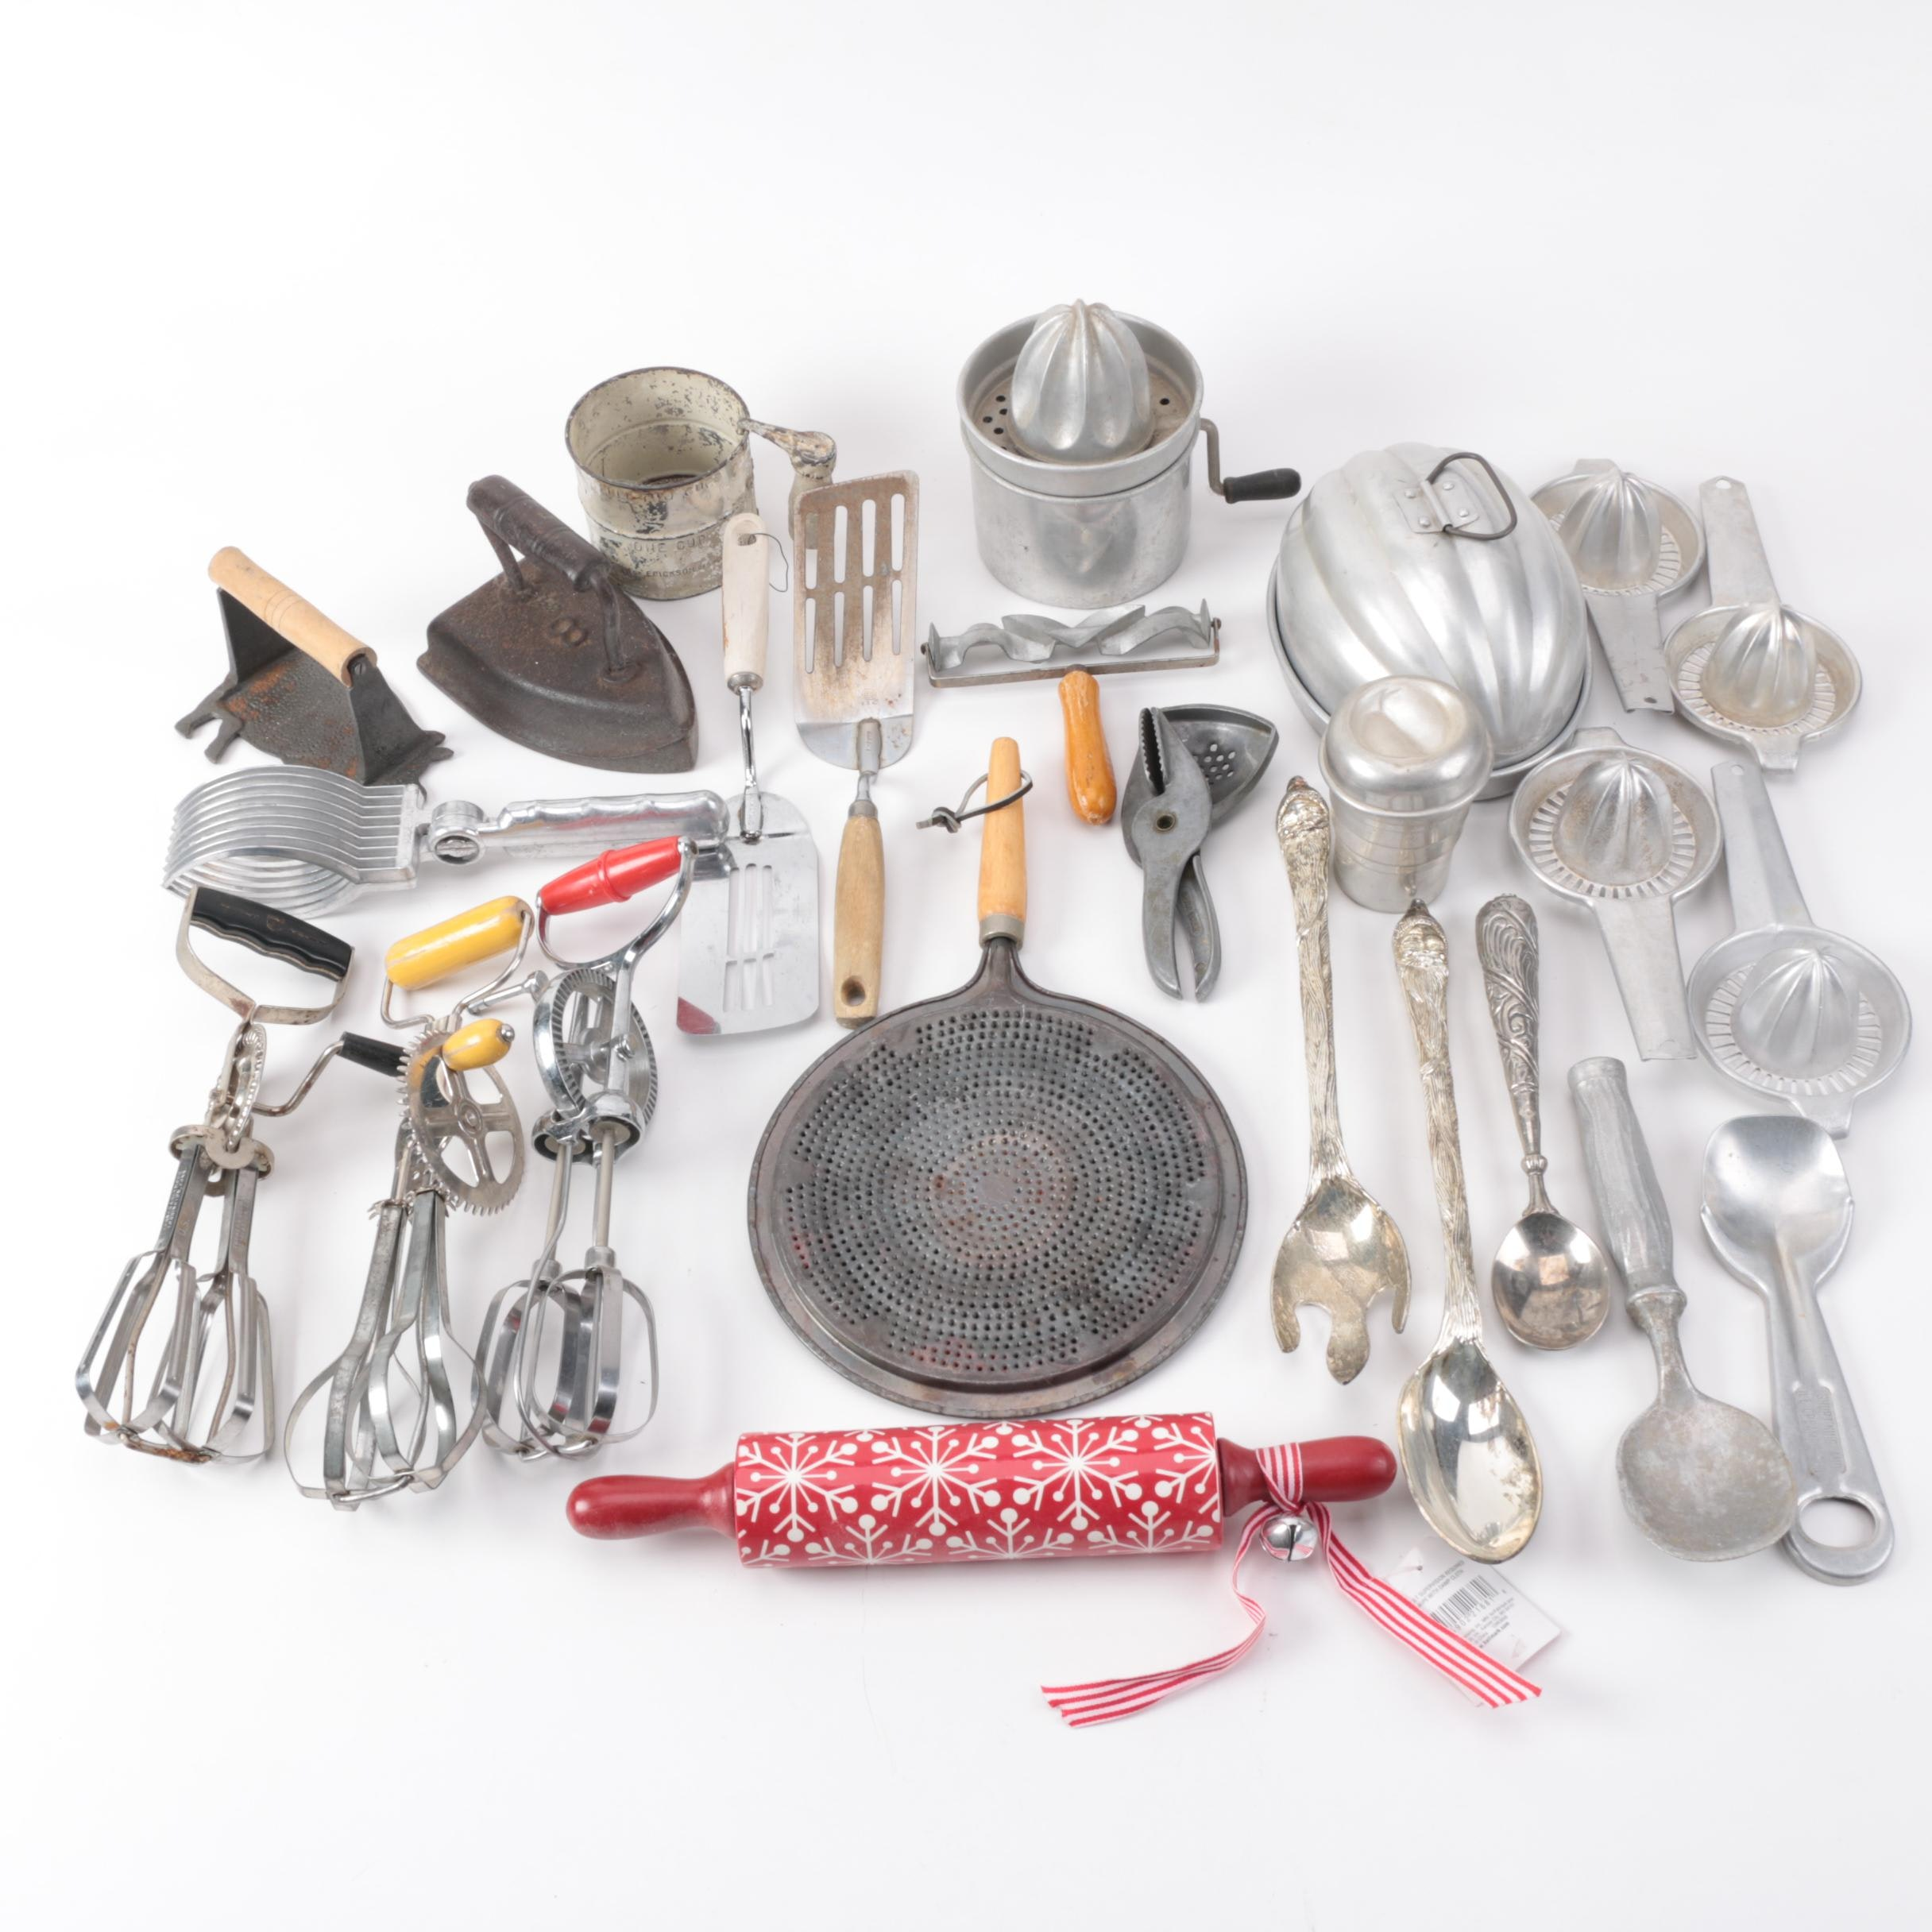 Delicieux Vintage Kitchen Gadgets Featuring Hand Mixers, Serving Utensils And More ...